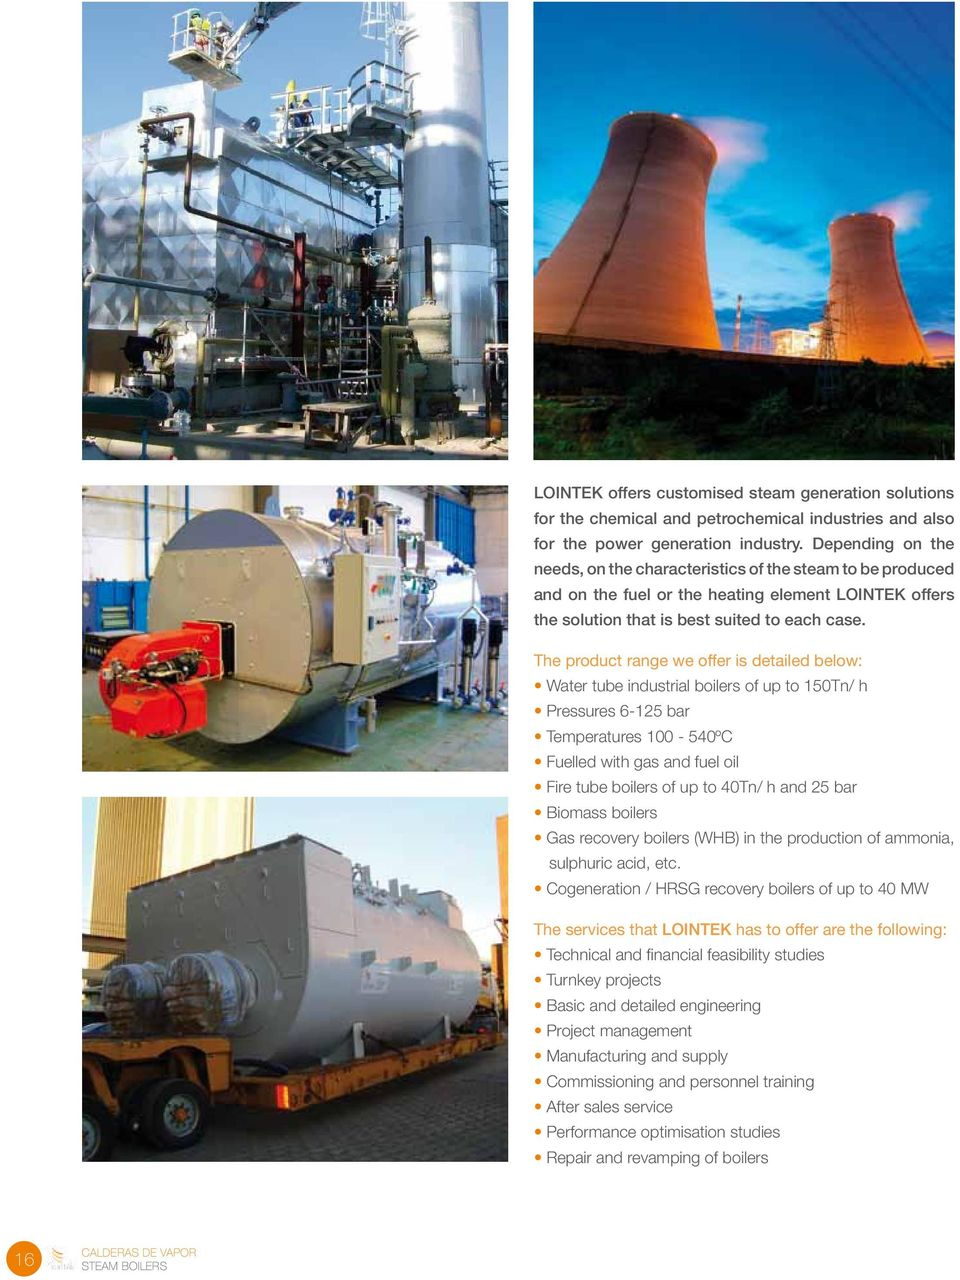 The product range we offer is detailed below: Water tube industrial boilers of up to 150Tn/ h Pressures 6-125 bar Temperatures 100-540ºC Fuelled with gas and fuel oil Fire tube boilers of up to 40Tn/